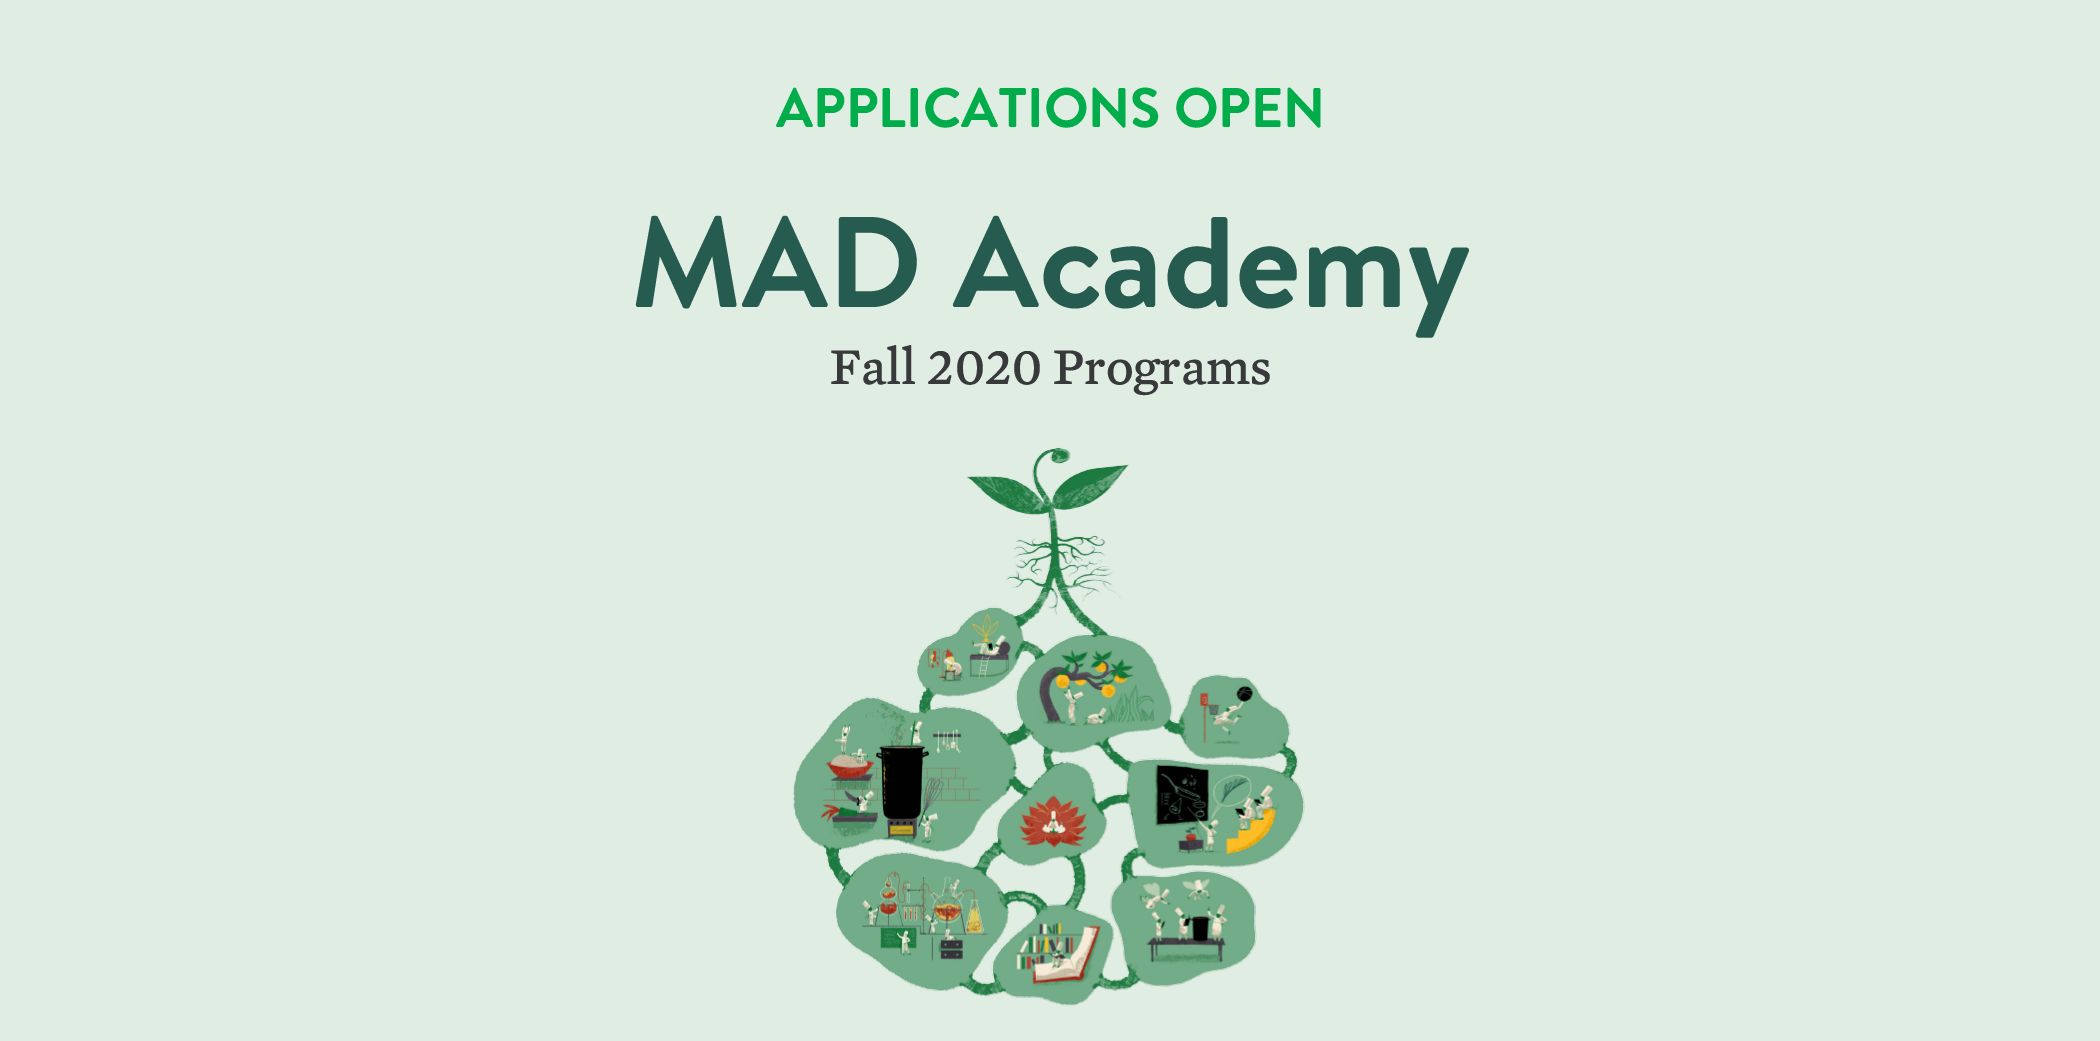 MAD Academy Applications Open